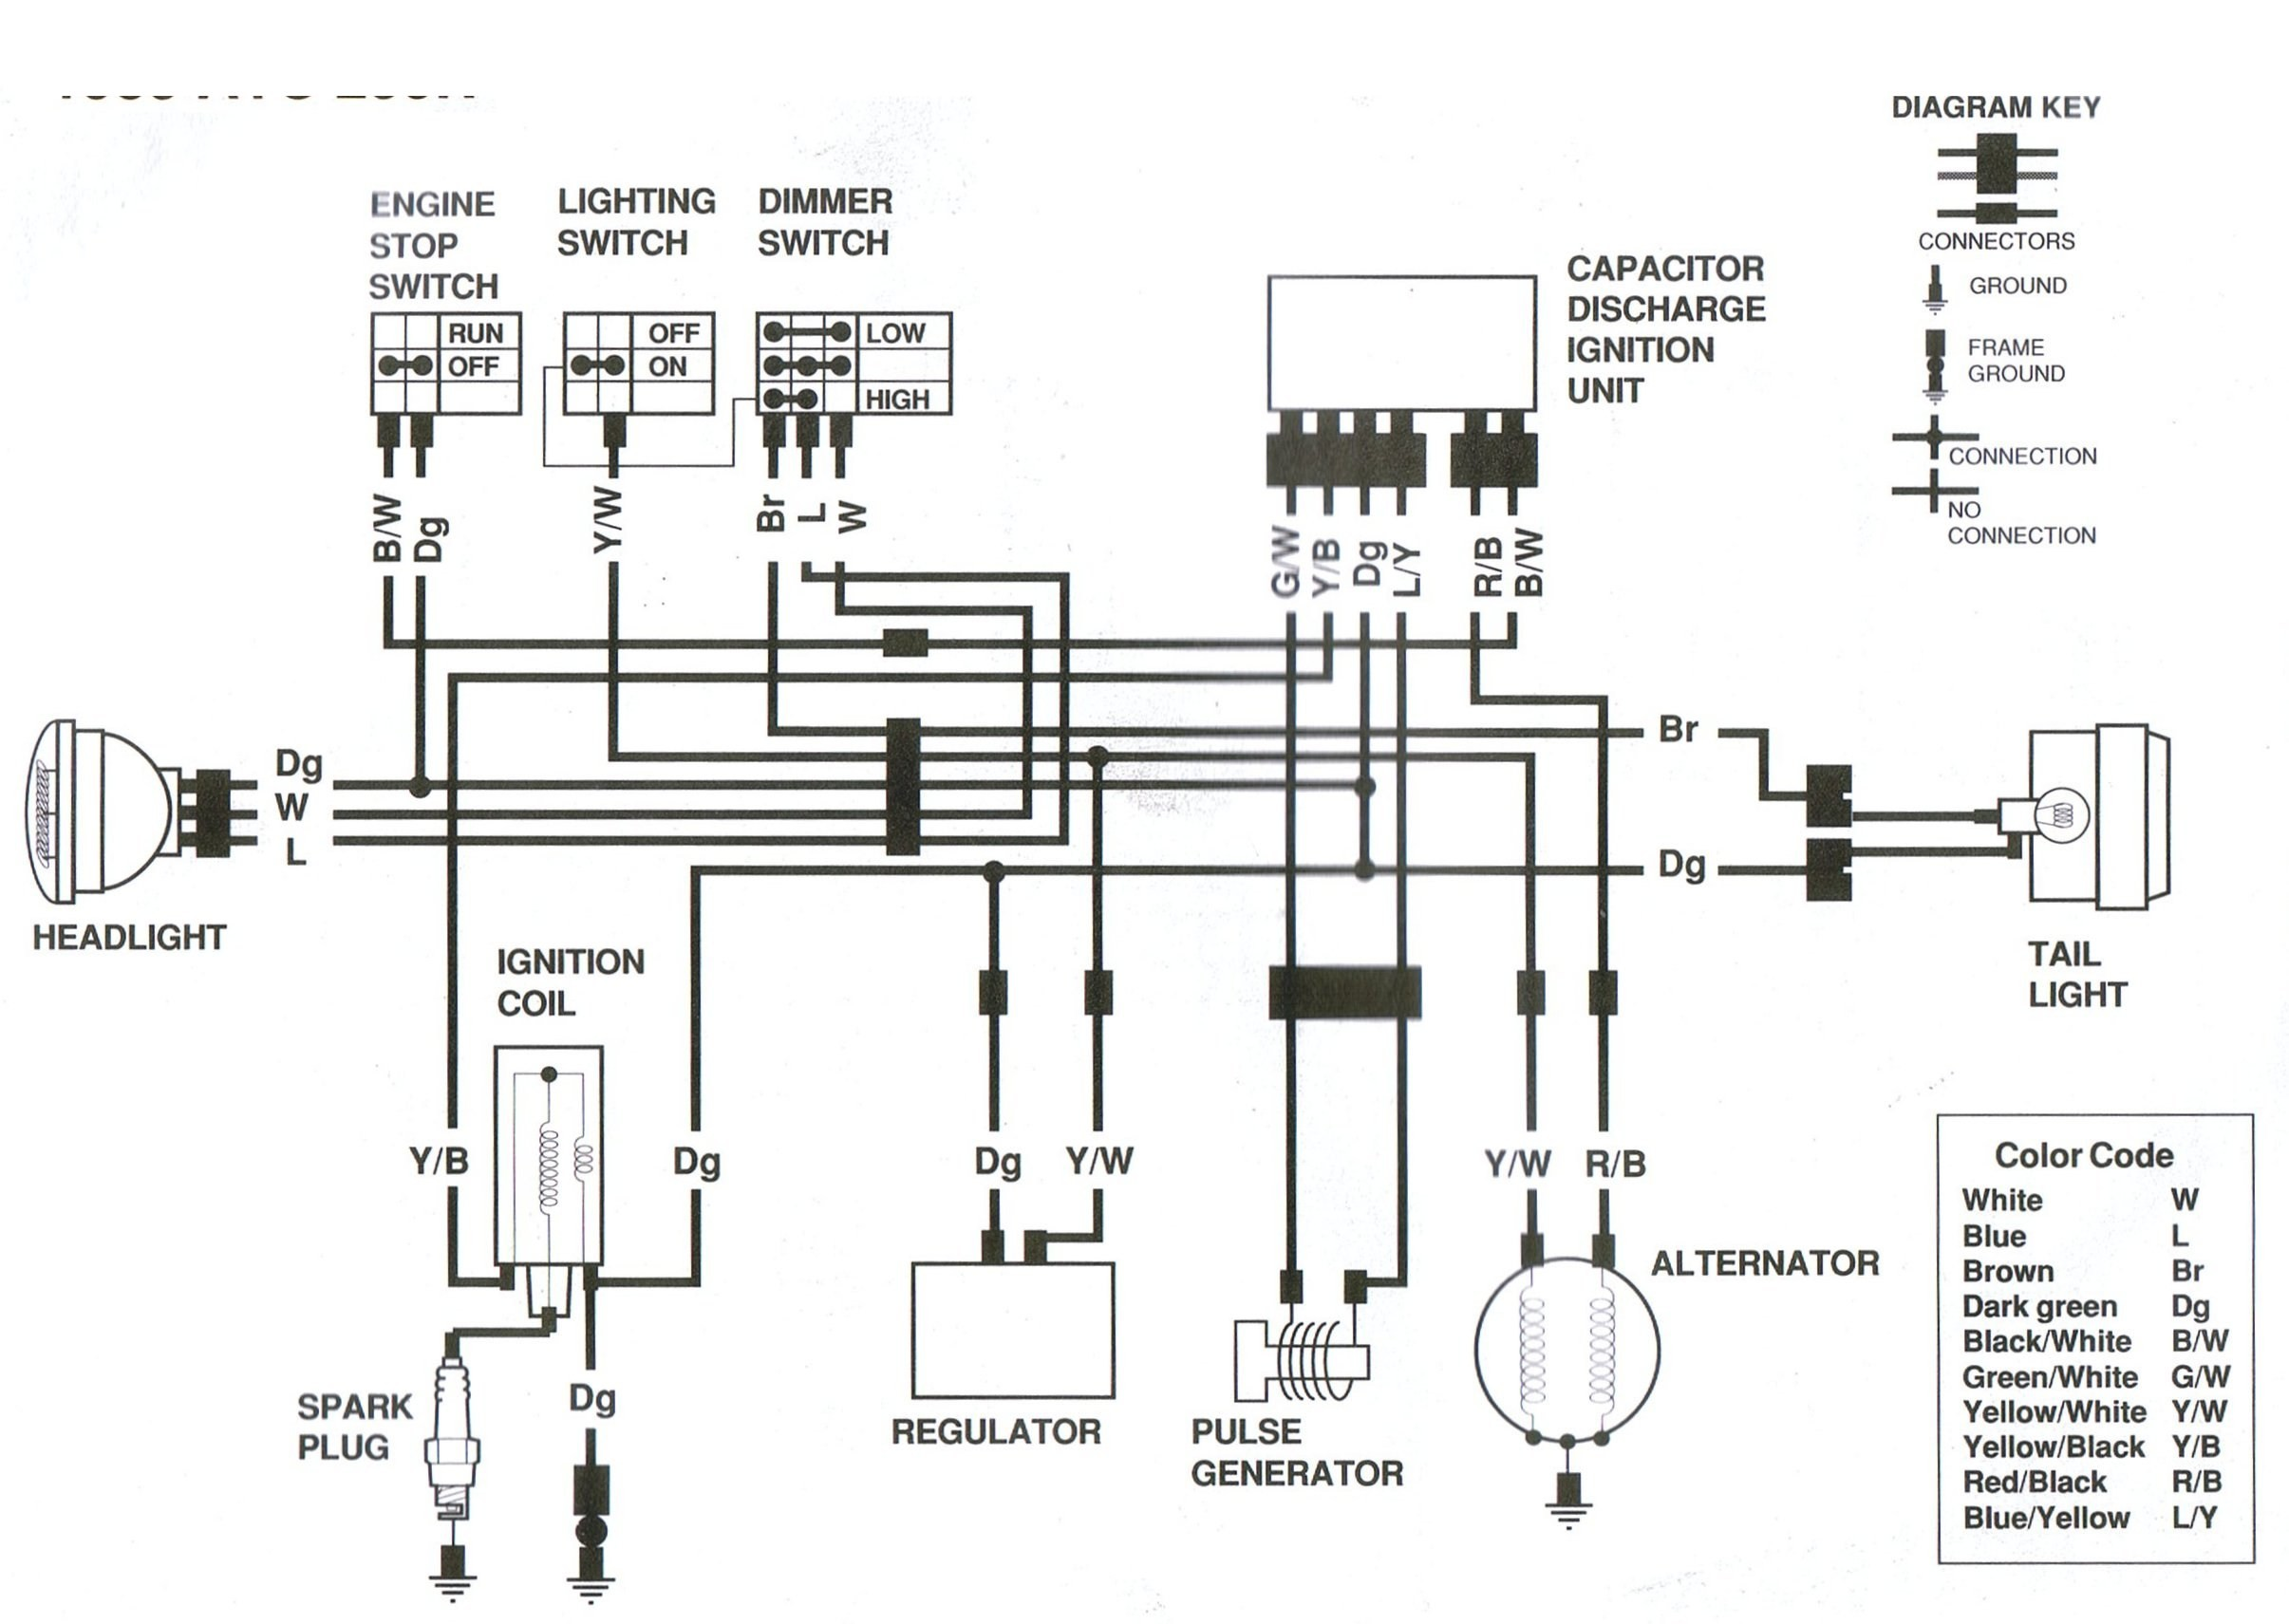 Atv Wire Diagram for Winch Motor Xtreme Wiring Diagram Of Atv Wire Diagram for Winch Motor